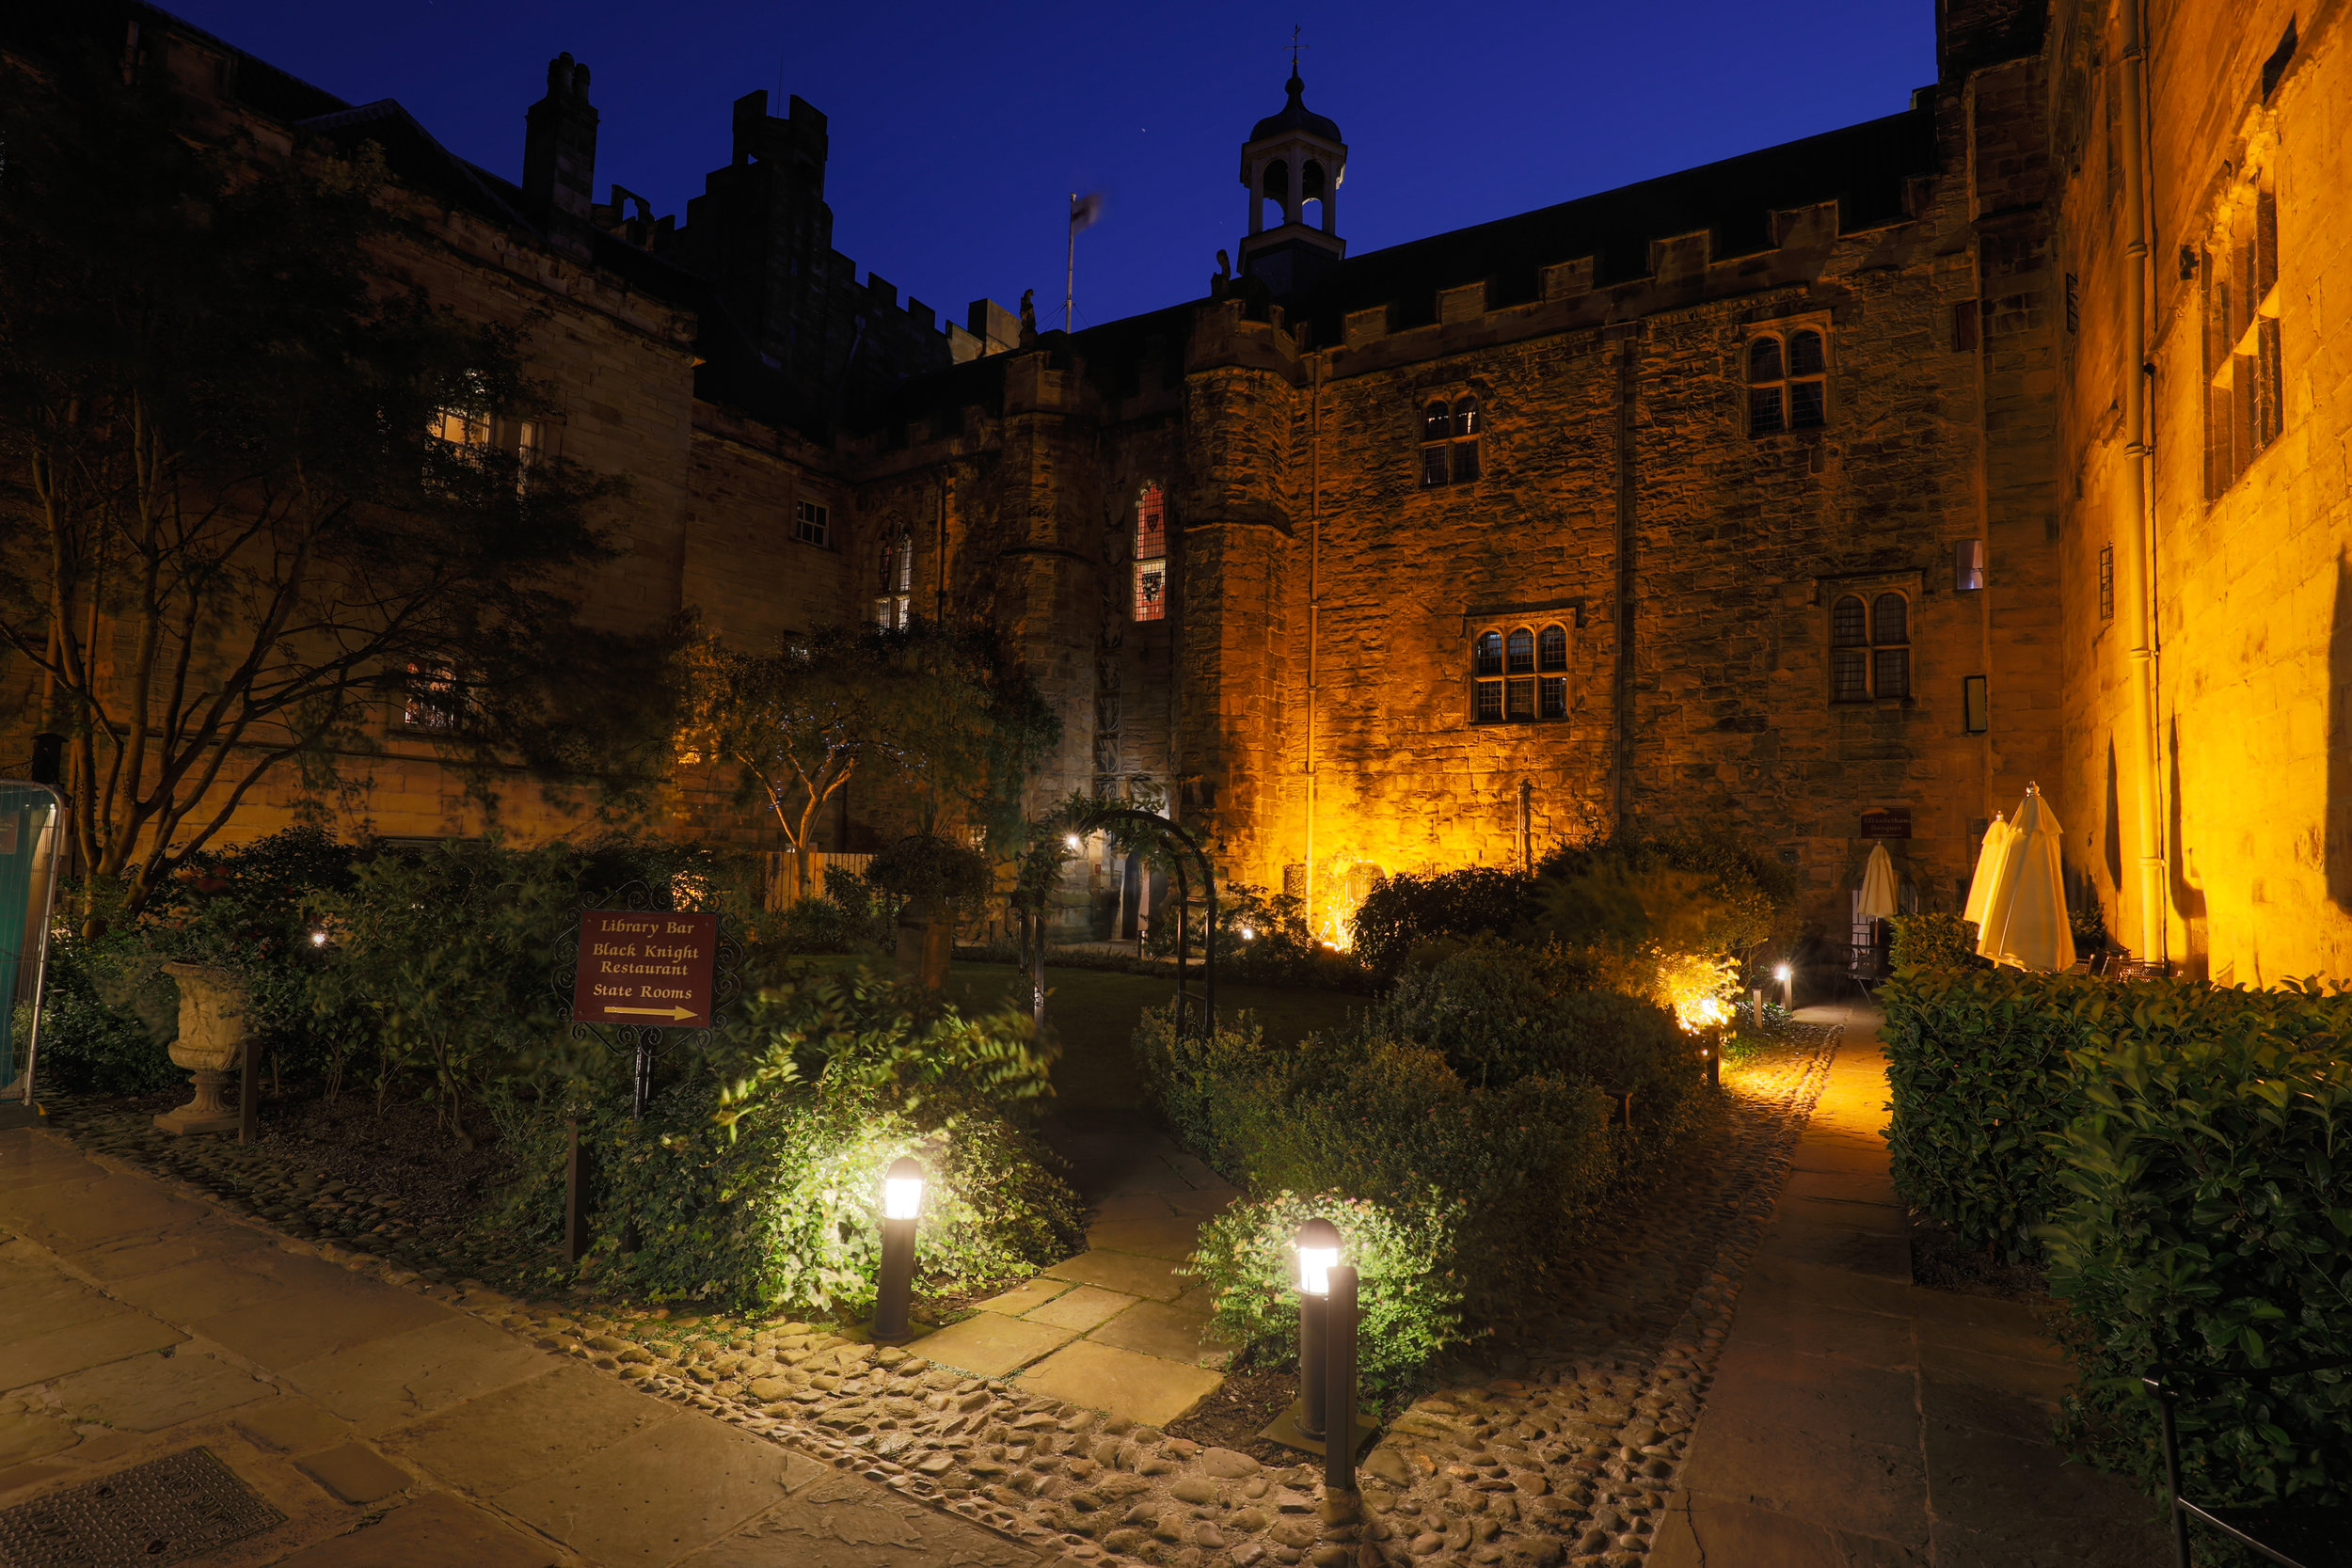 Lumley Castle Courtyard at night